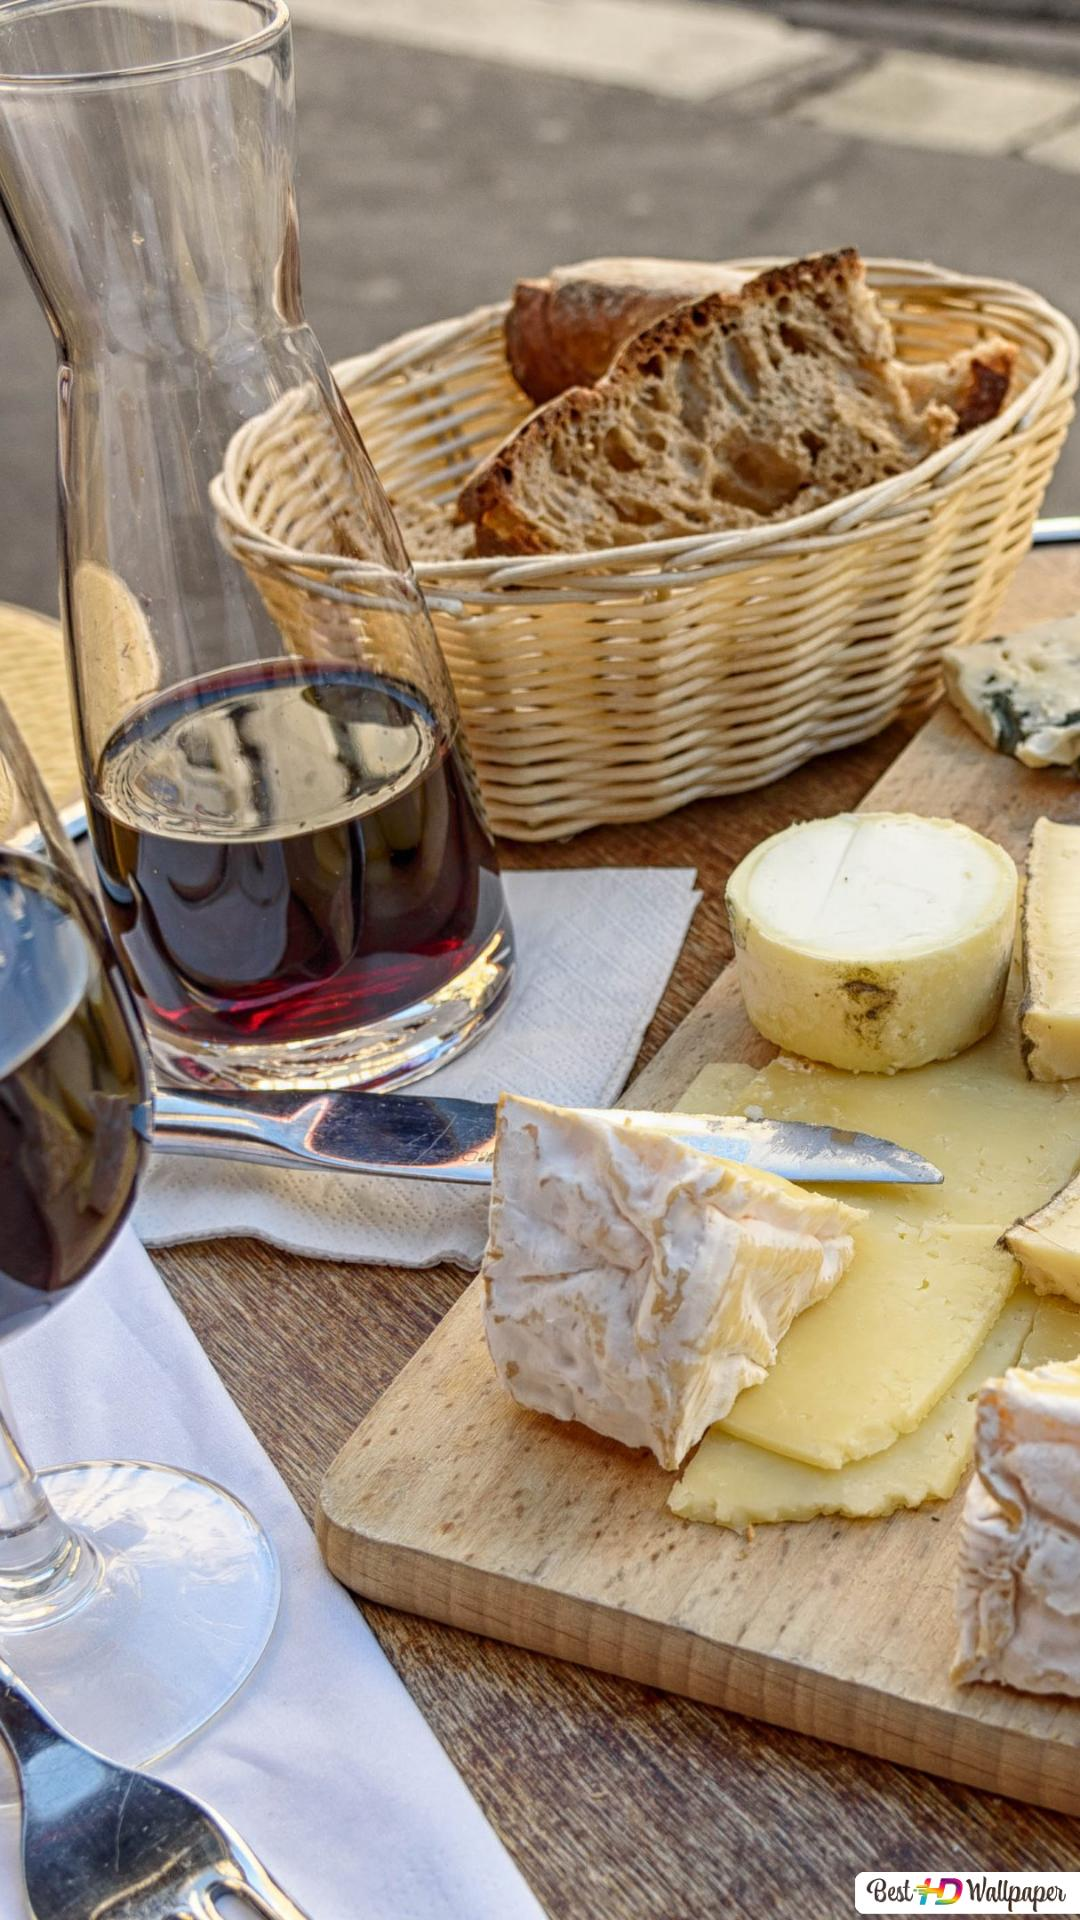 Wine And Cheese Hd Wallpaper Download